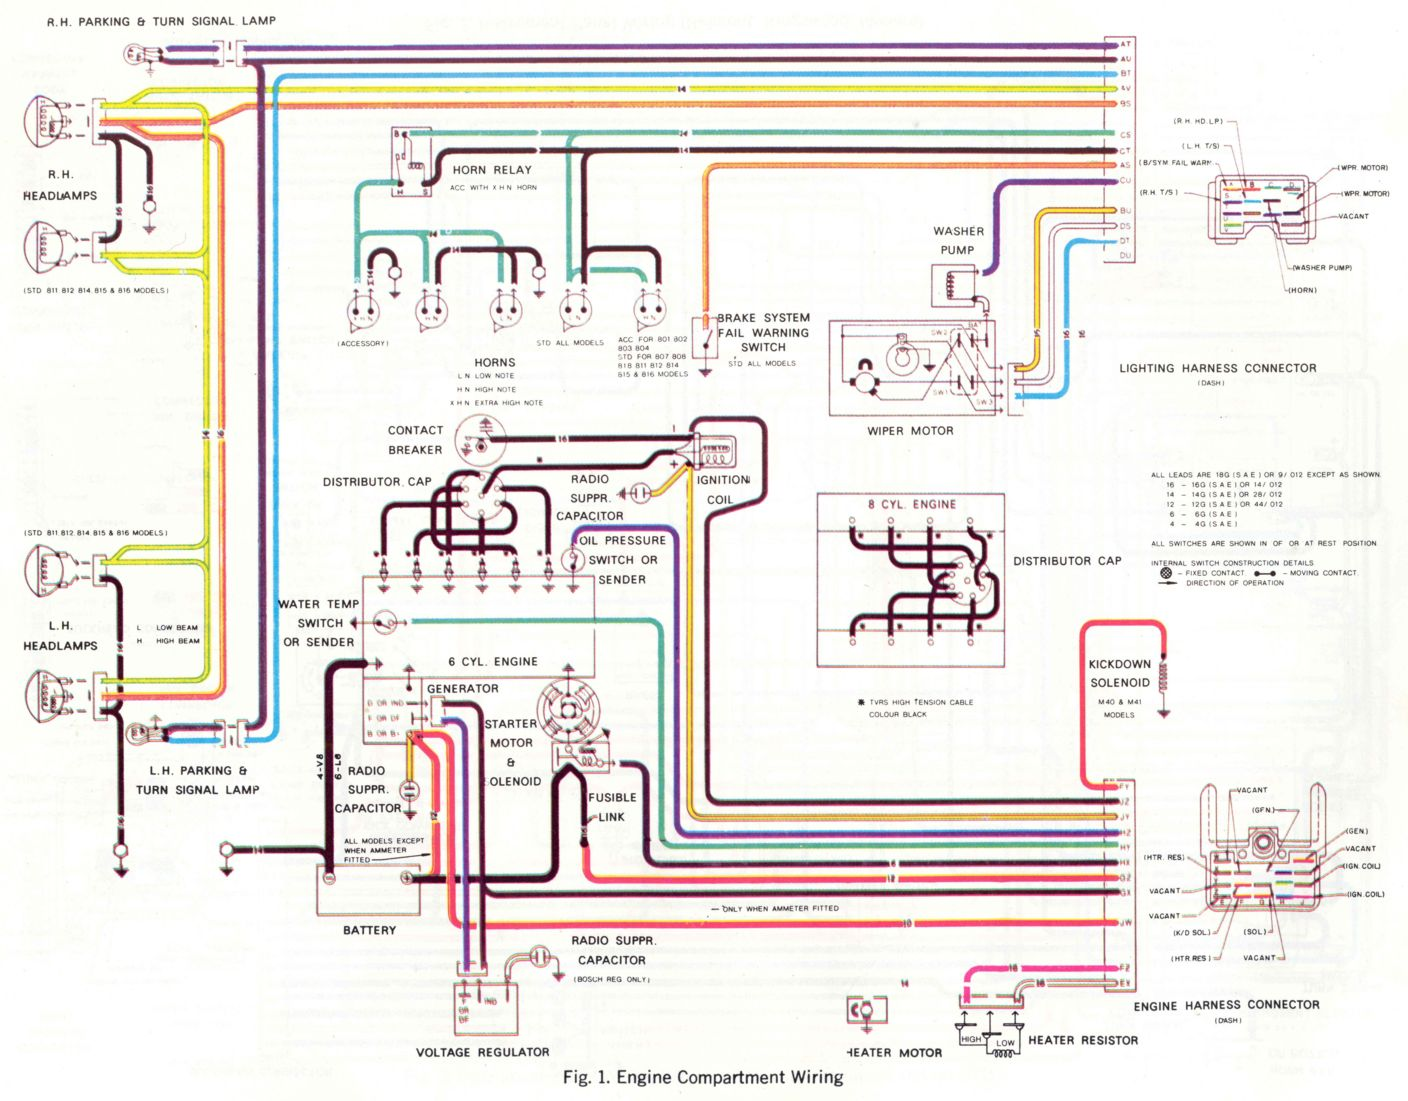 Wiring Diagram For Mercedes G Wagon Diy Enthusiasts Diagrams C Class Loom Holden 308 Get Free Image About 2012 E350 Benz Engine